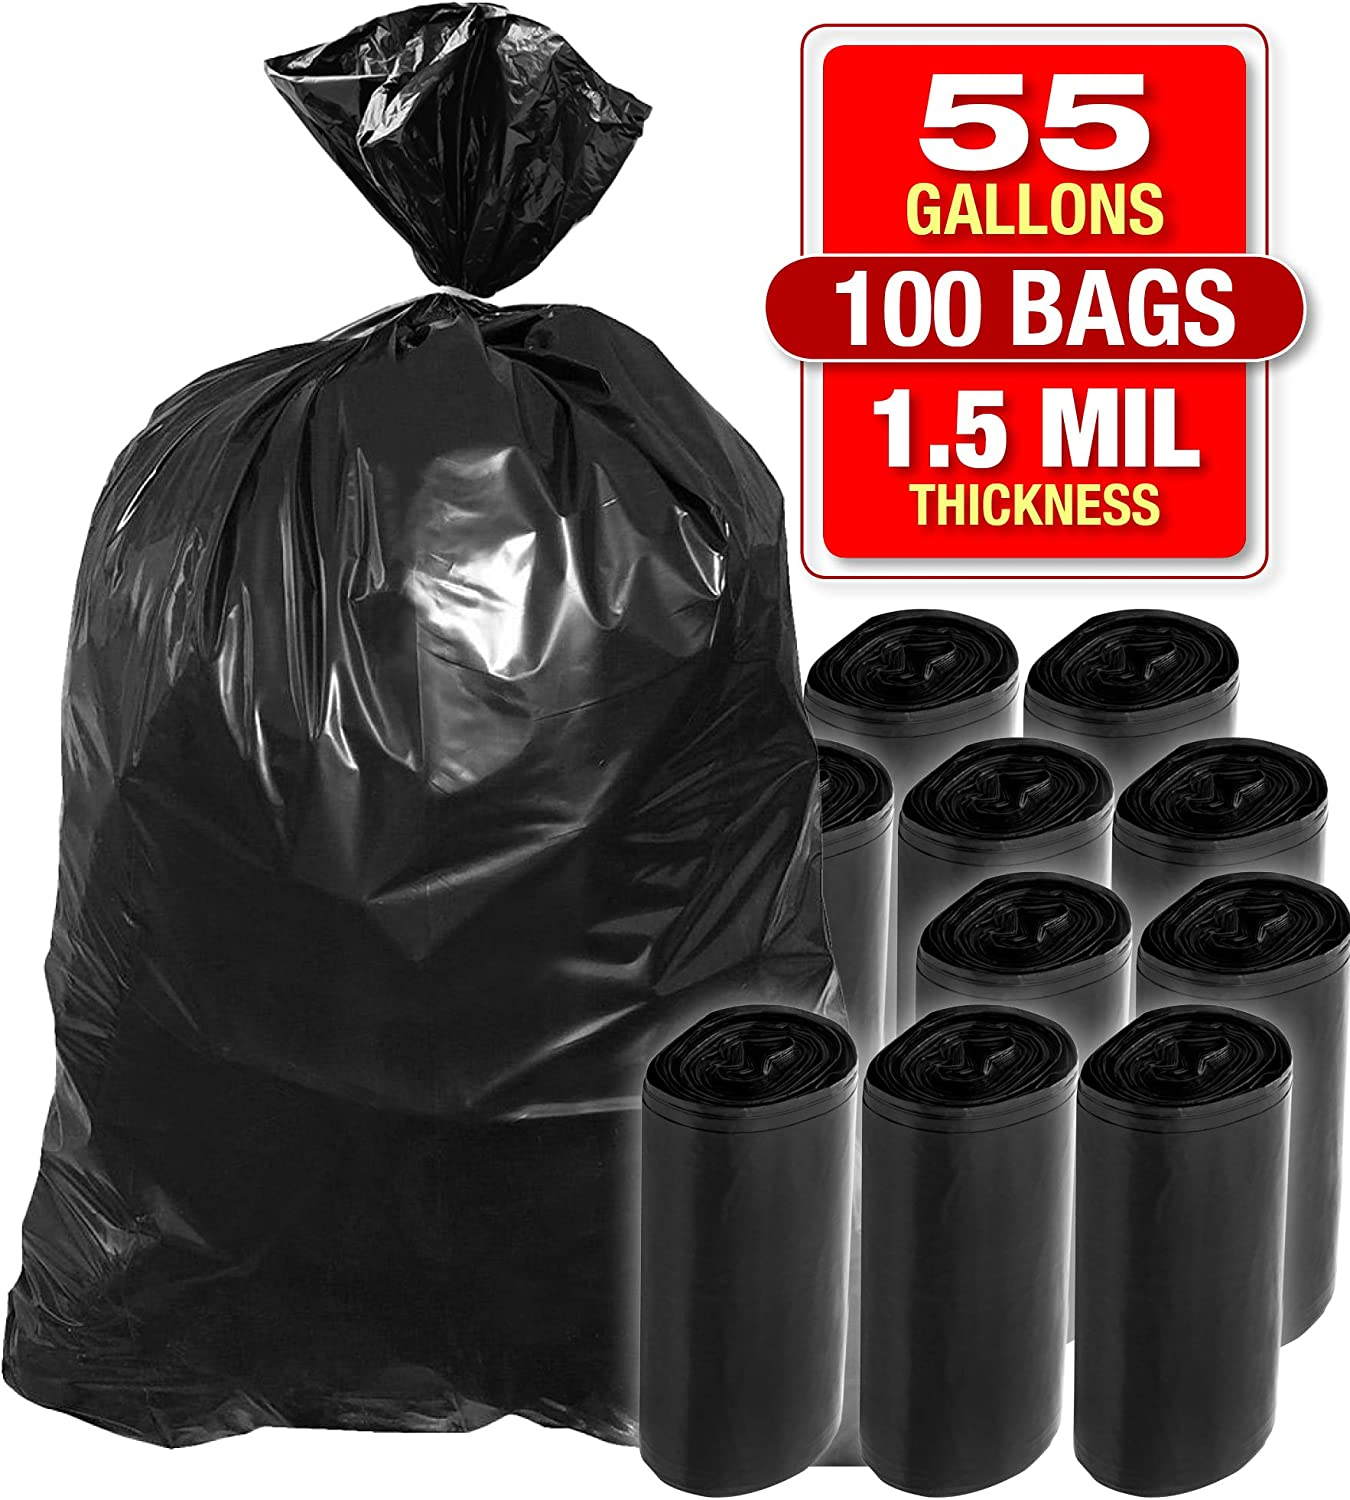 "55 Gallon 100 PK Heavy Duty Black Trash Bags - Bags for Garbage, Storage - 1.5 Mil Thick, 35""Wx55""H Industrial Grade Trash Bags for Construction, Yard Work, Commercial Use - by Tougher Goods"